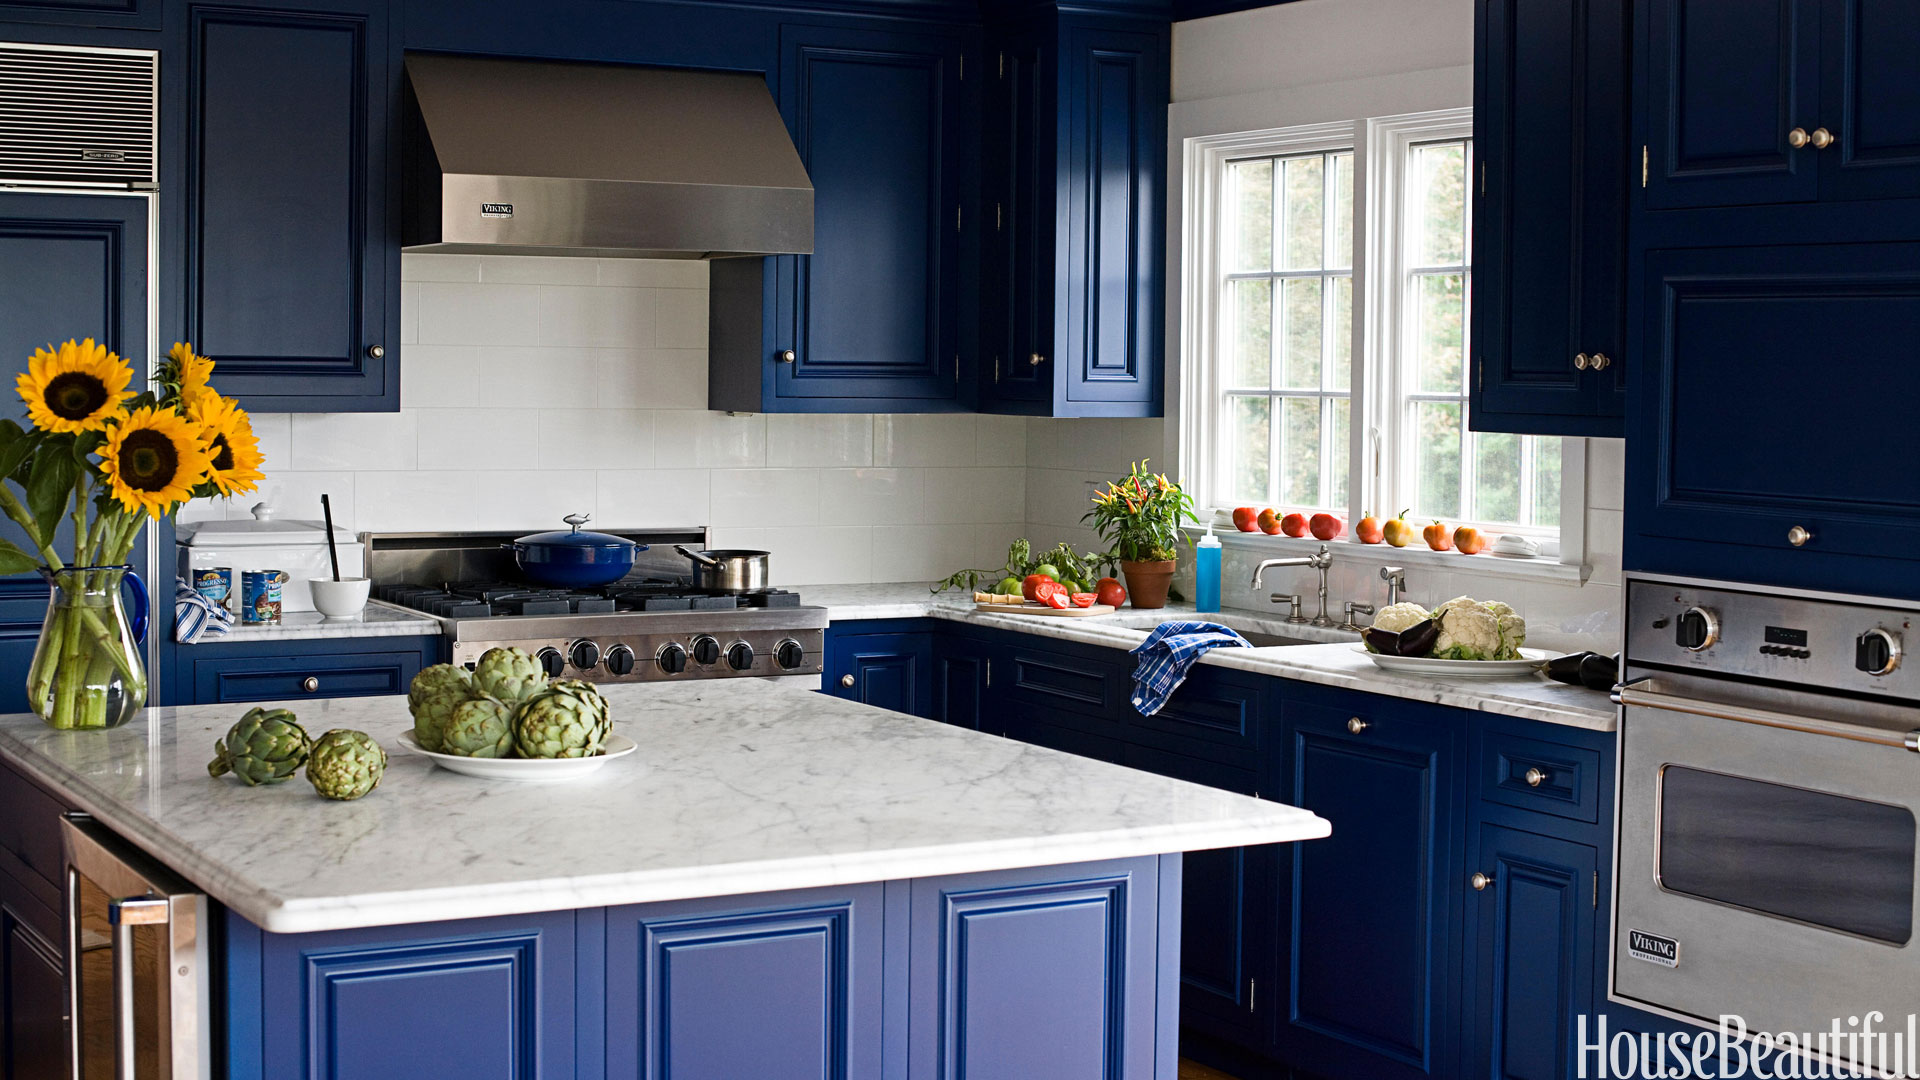 10 nov kitchen remodeling tips to choose the right color - Kitchen Cabinets Colors